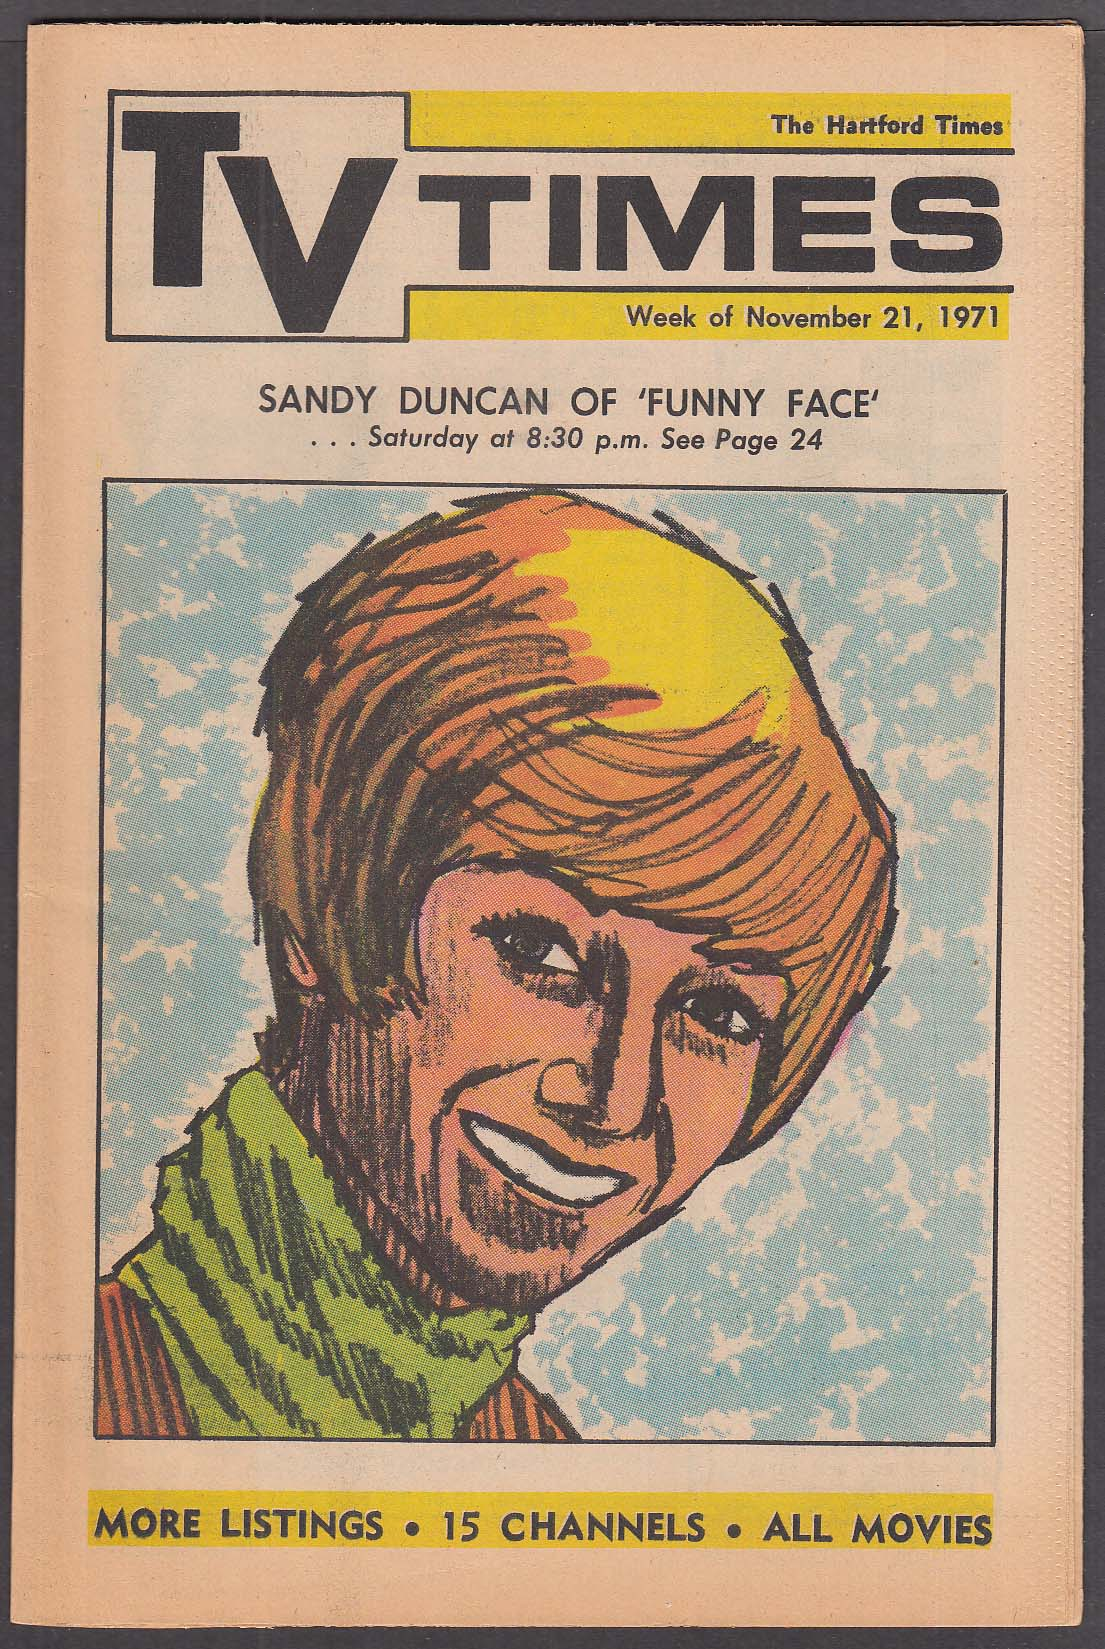 TV TIMES Sandy Duncan in Funny Face 11/21 1971